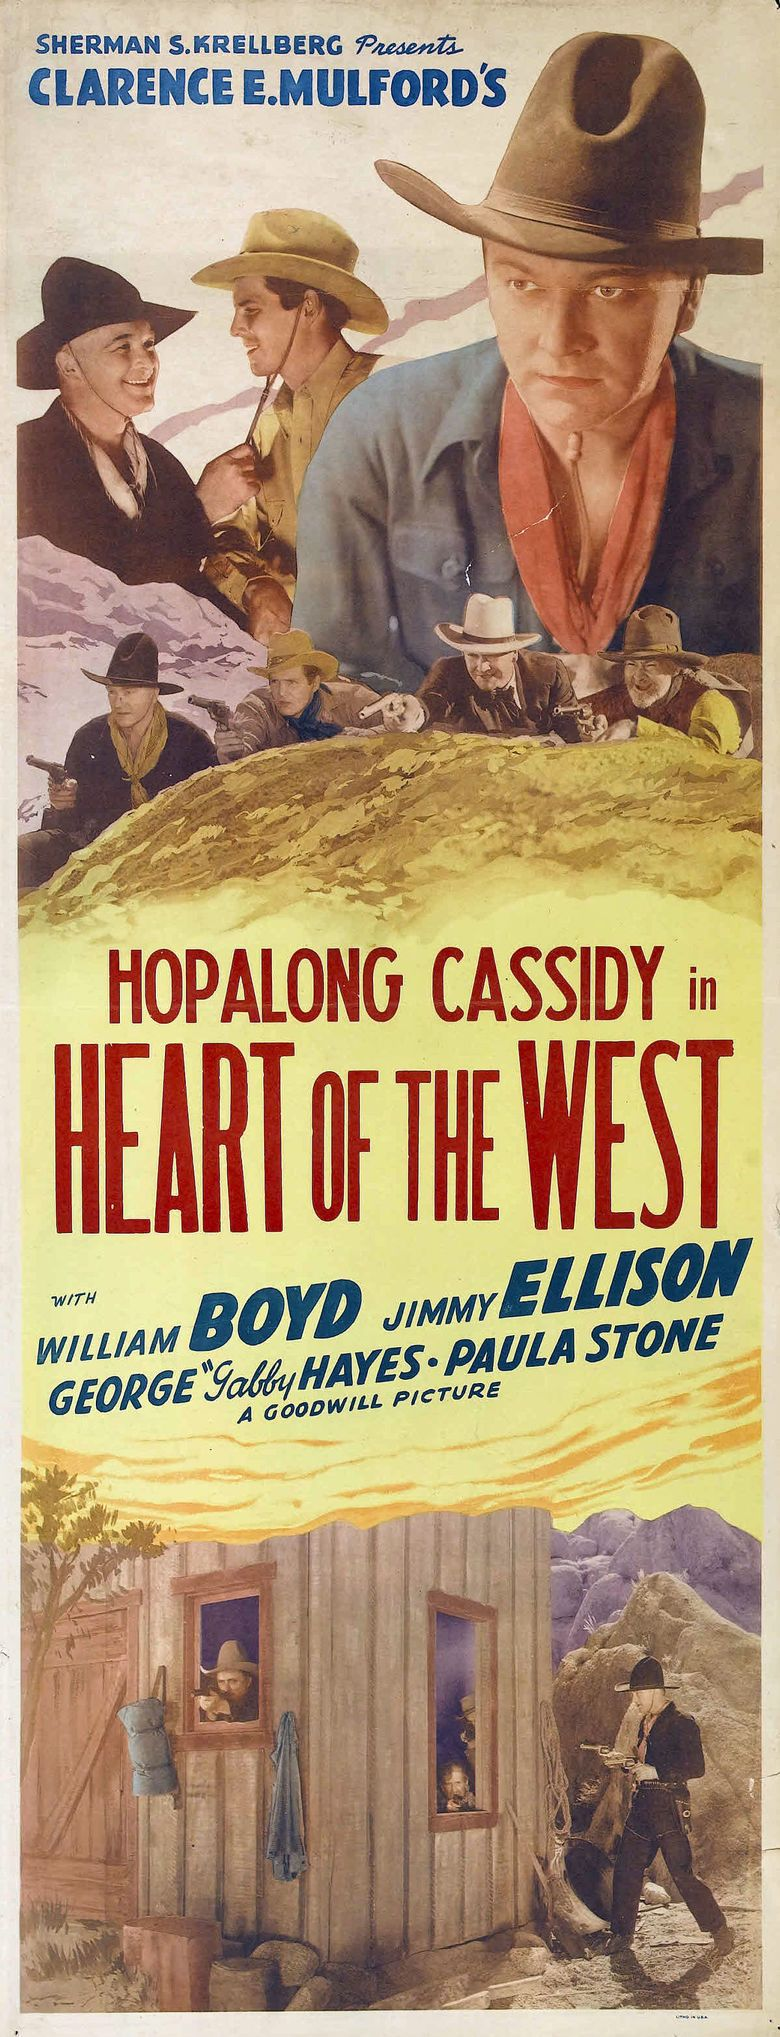 Heart of the West (film) movie poster